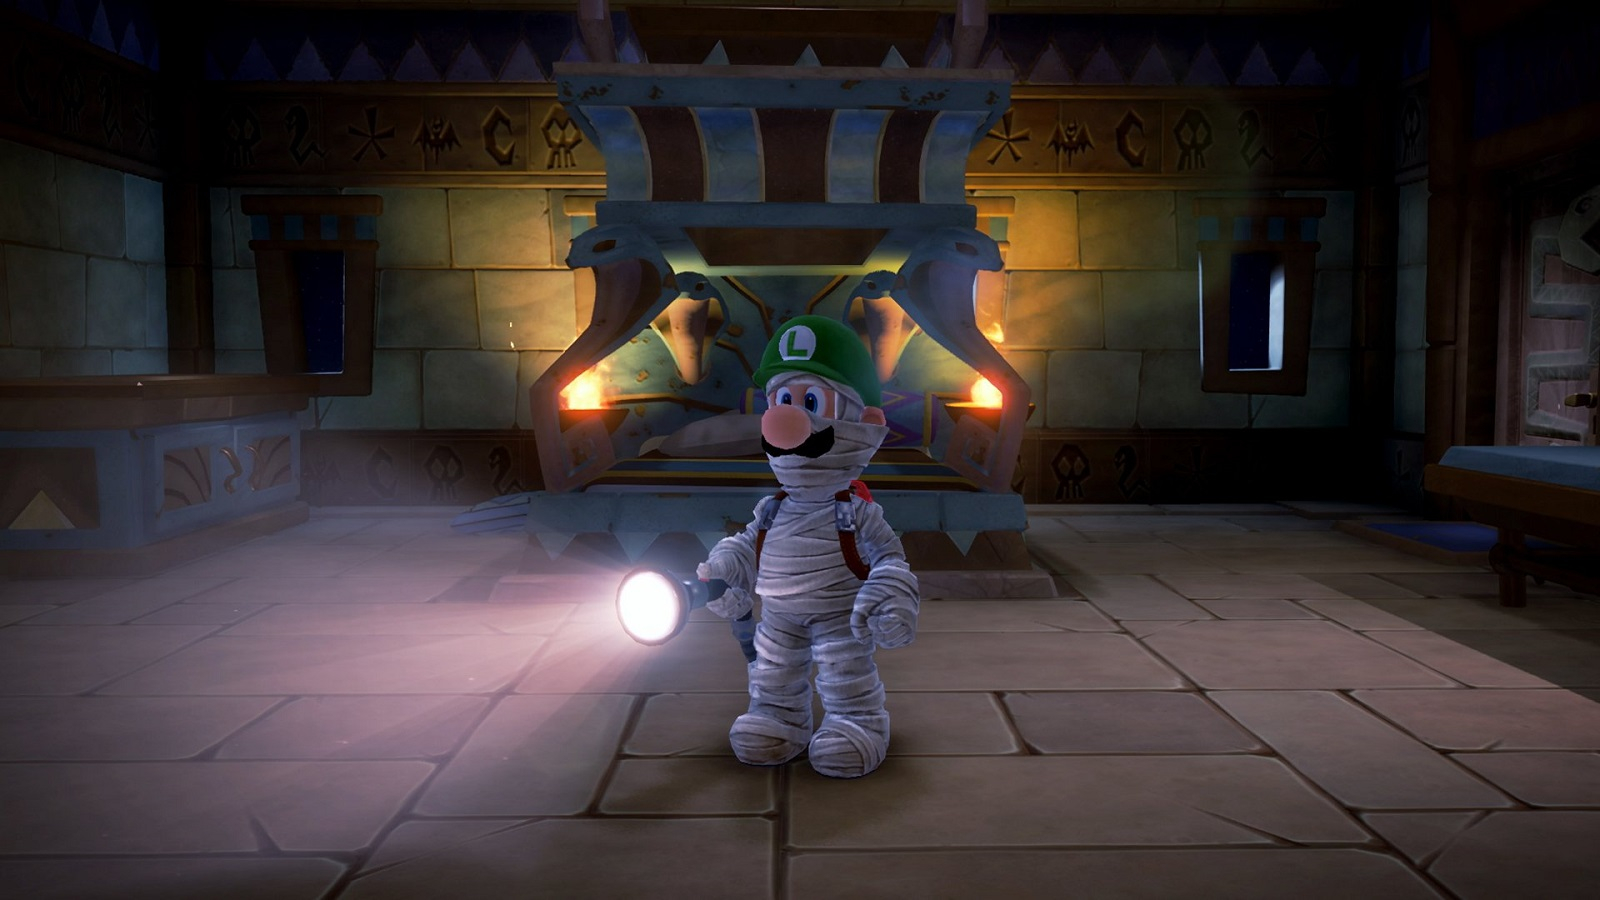 Для Luigis Mansion 3 вышла первая часть многопользовательского дополнения